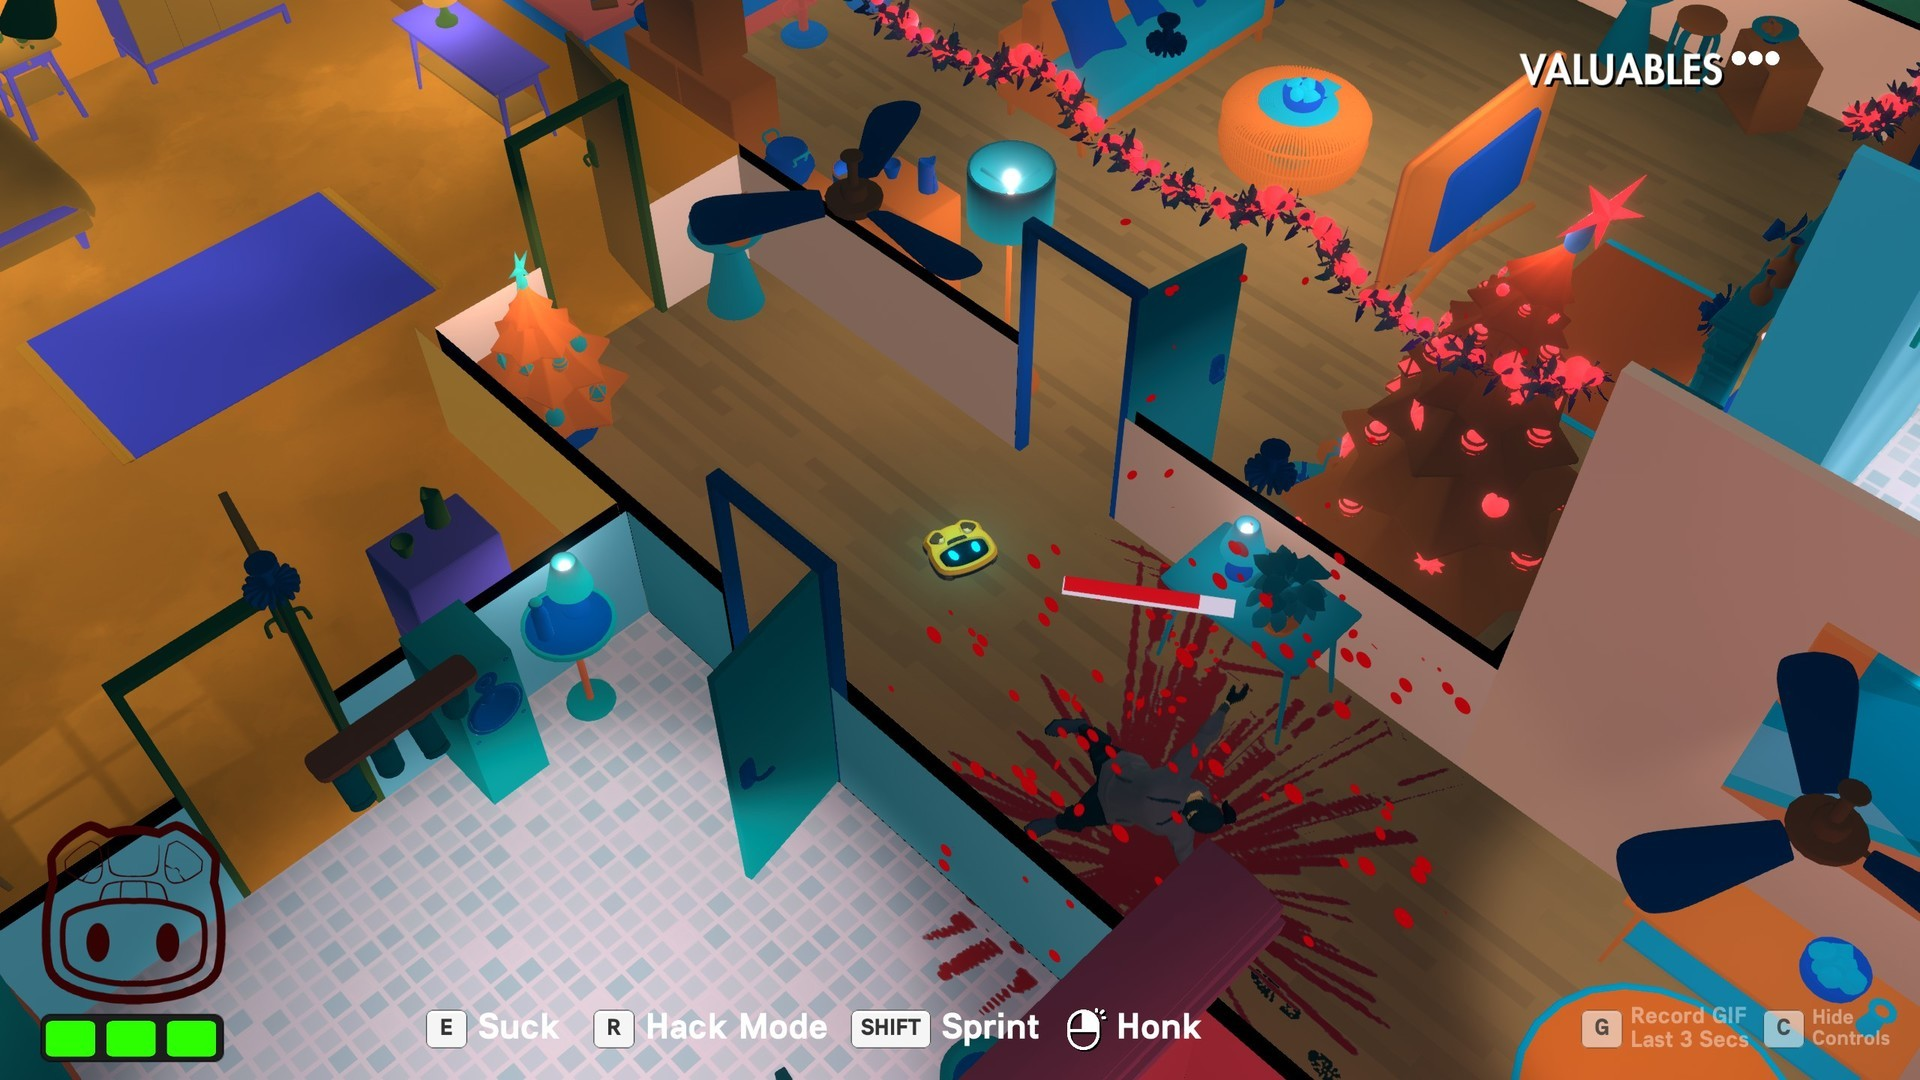 3D, Action, adventure, arcade, Funny, Gore, indie, Nintendo Switch Review, Rating 7/10, Roombo: First Blood, Roombo: First Blood Review, samurai punk, stealth, strategy, Switch Review, third-person, Violent